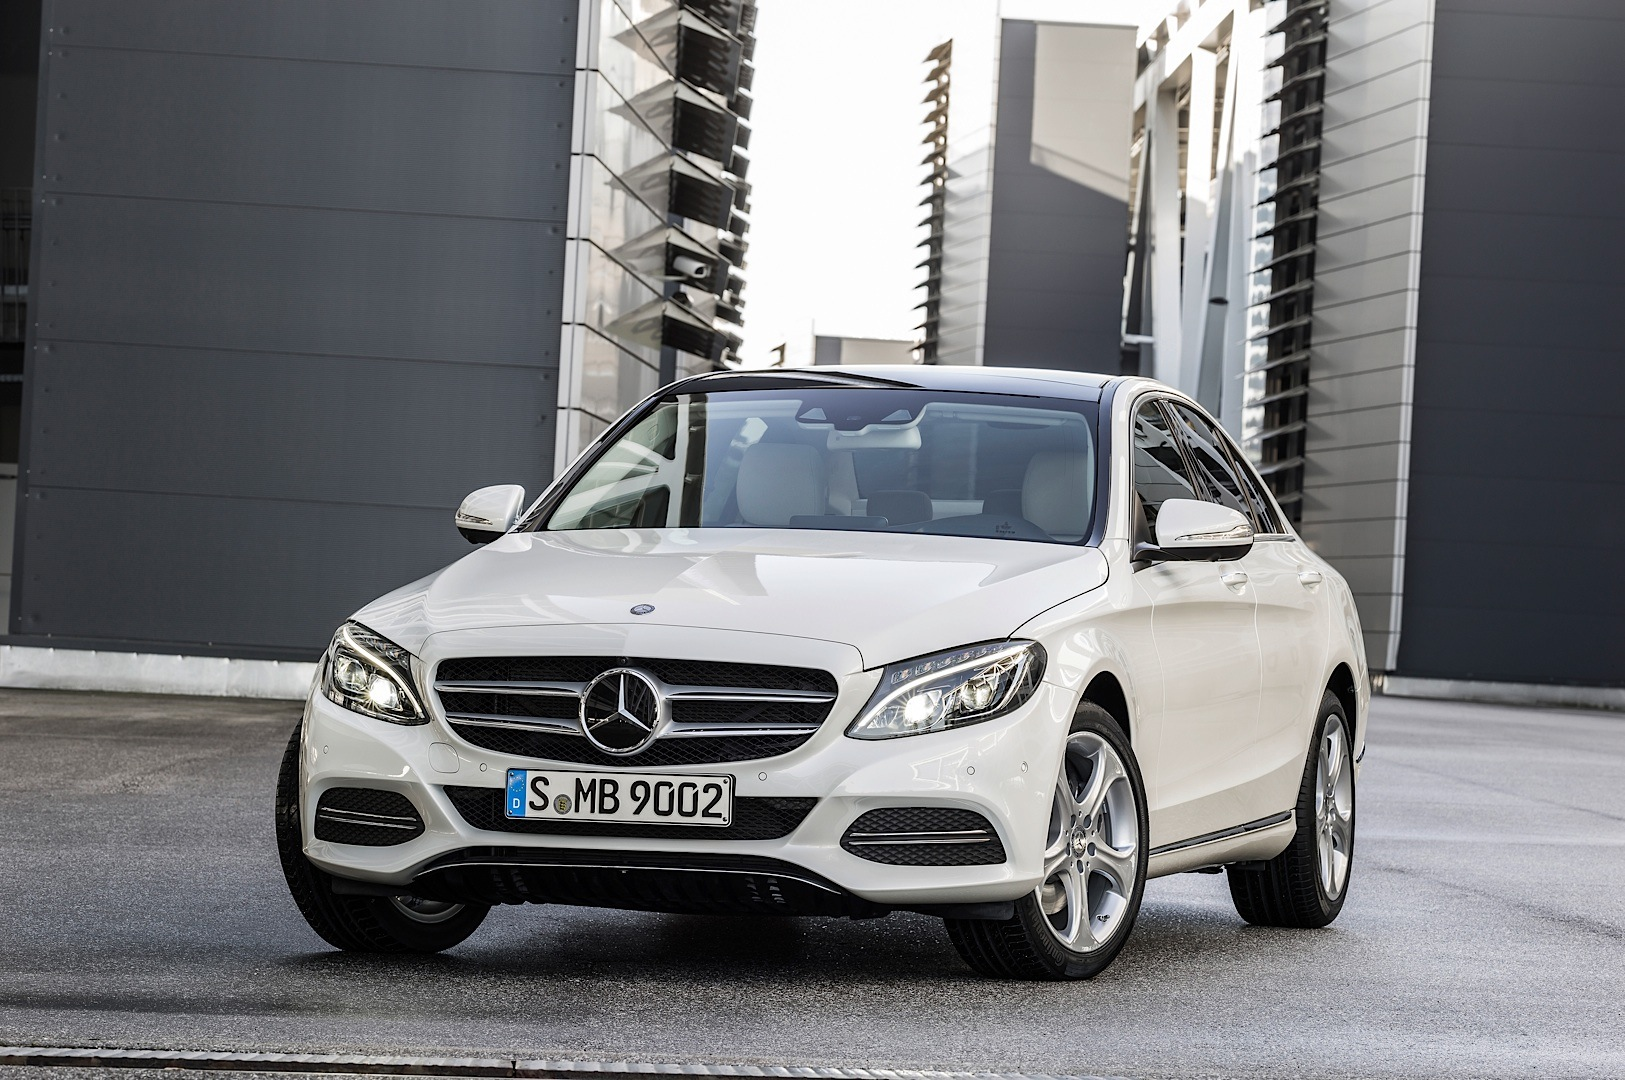 check-out-the-first-official-footage-with-the-new-c-class-w205-video-1080p-58